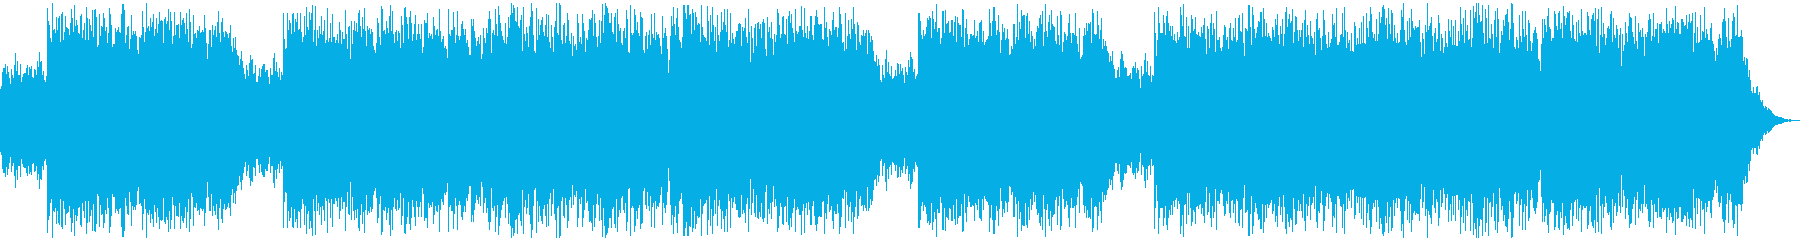 Expressing how it snows on a piano, etc.'s reproduced waveform